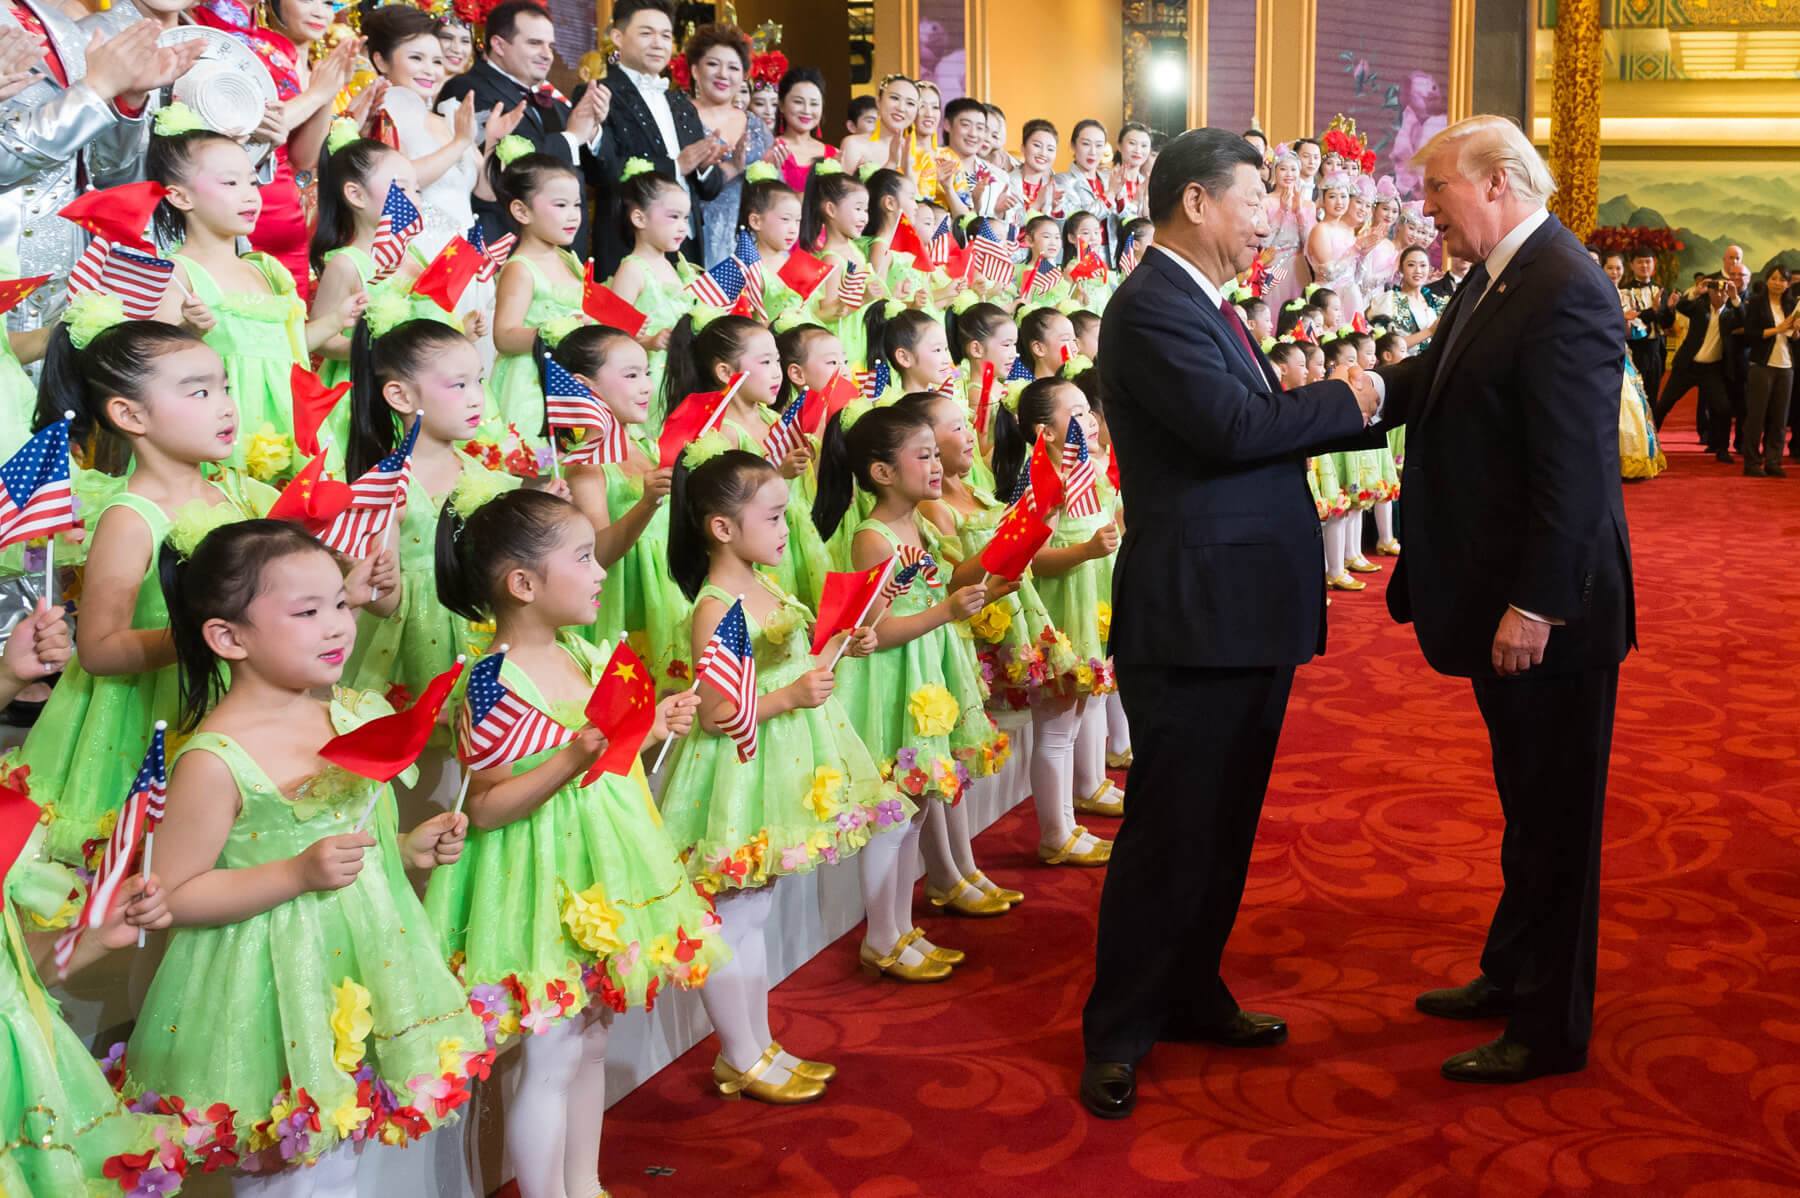 Yinhong - President Donald J. Trump and President Xi Jinping at the Great Hall of the People in Bejing, November 9, 2017. White House Photo